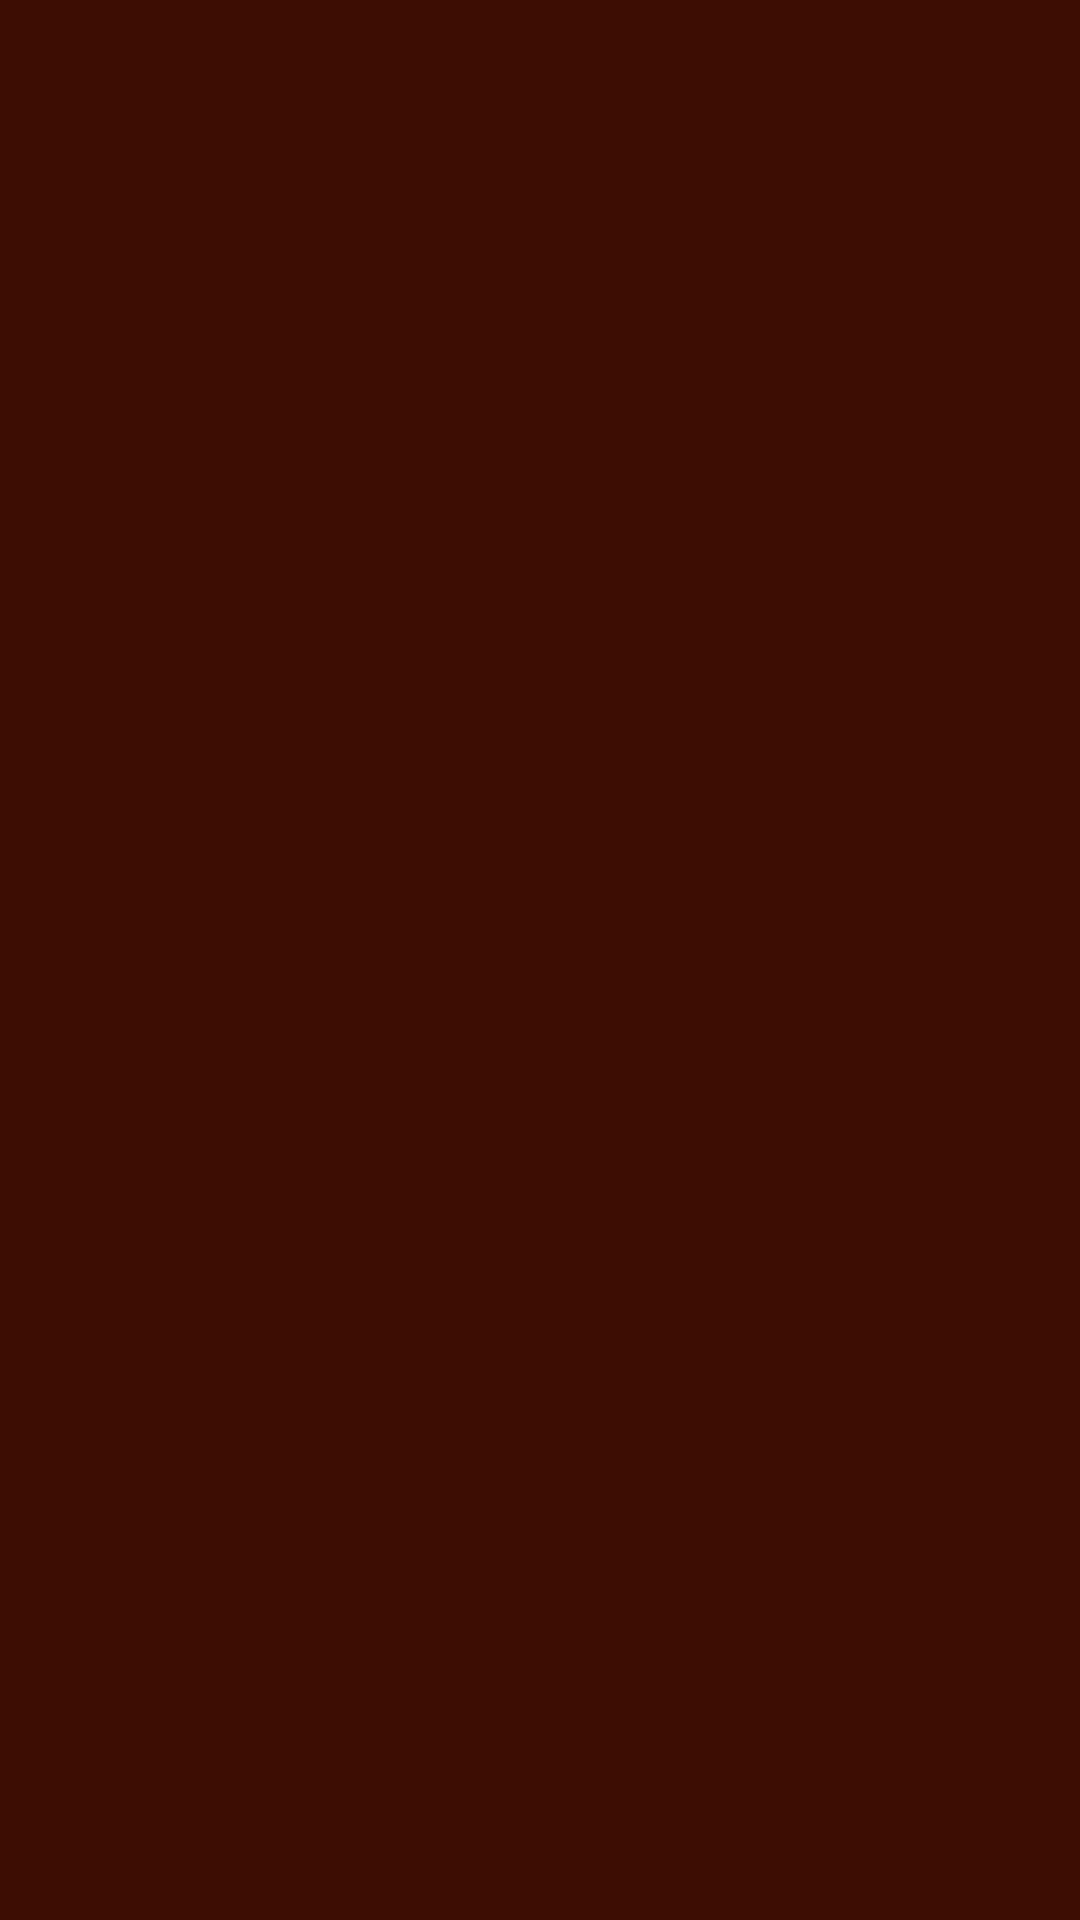 1080x1920 Black Bean Solid Color Background